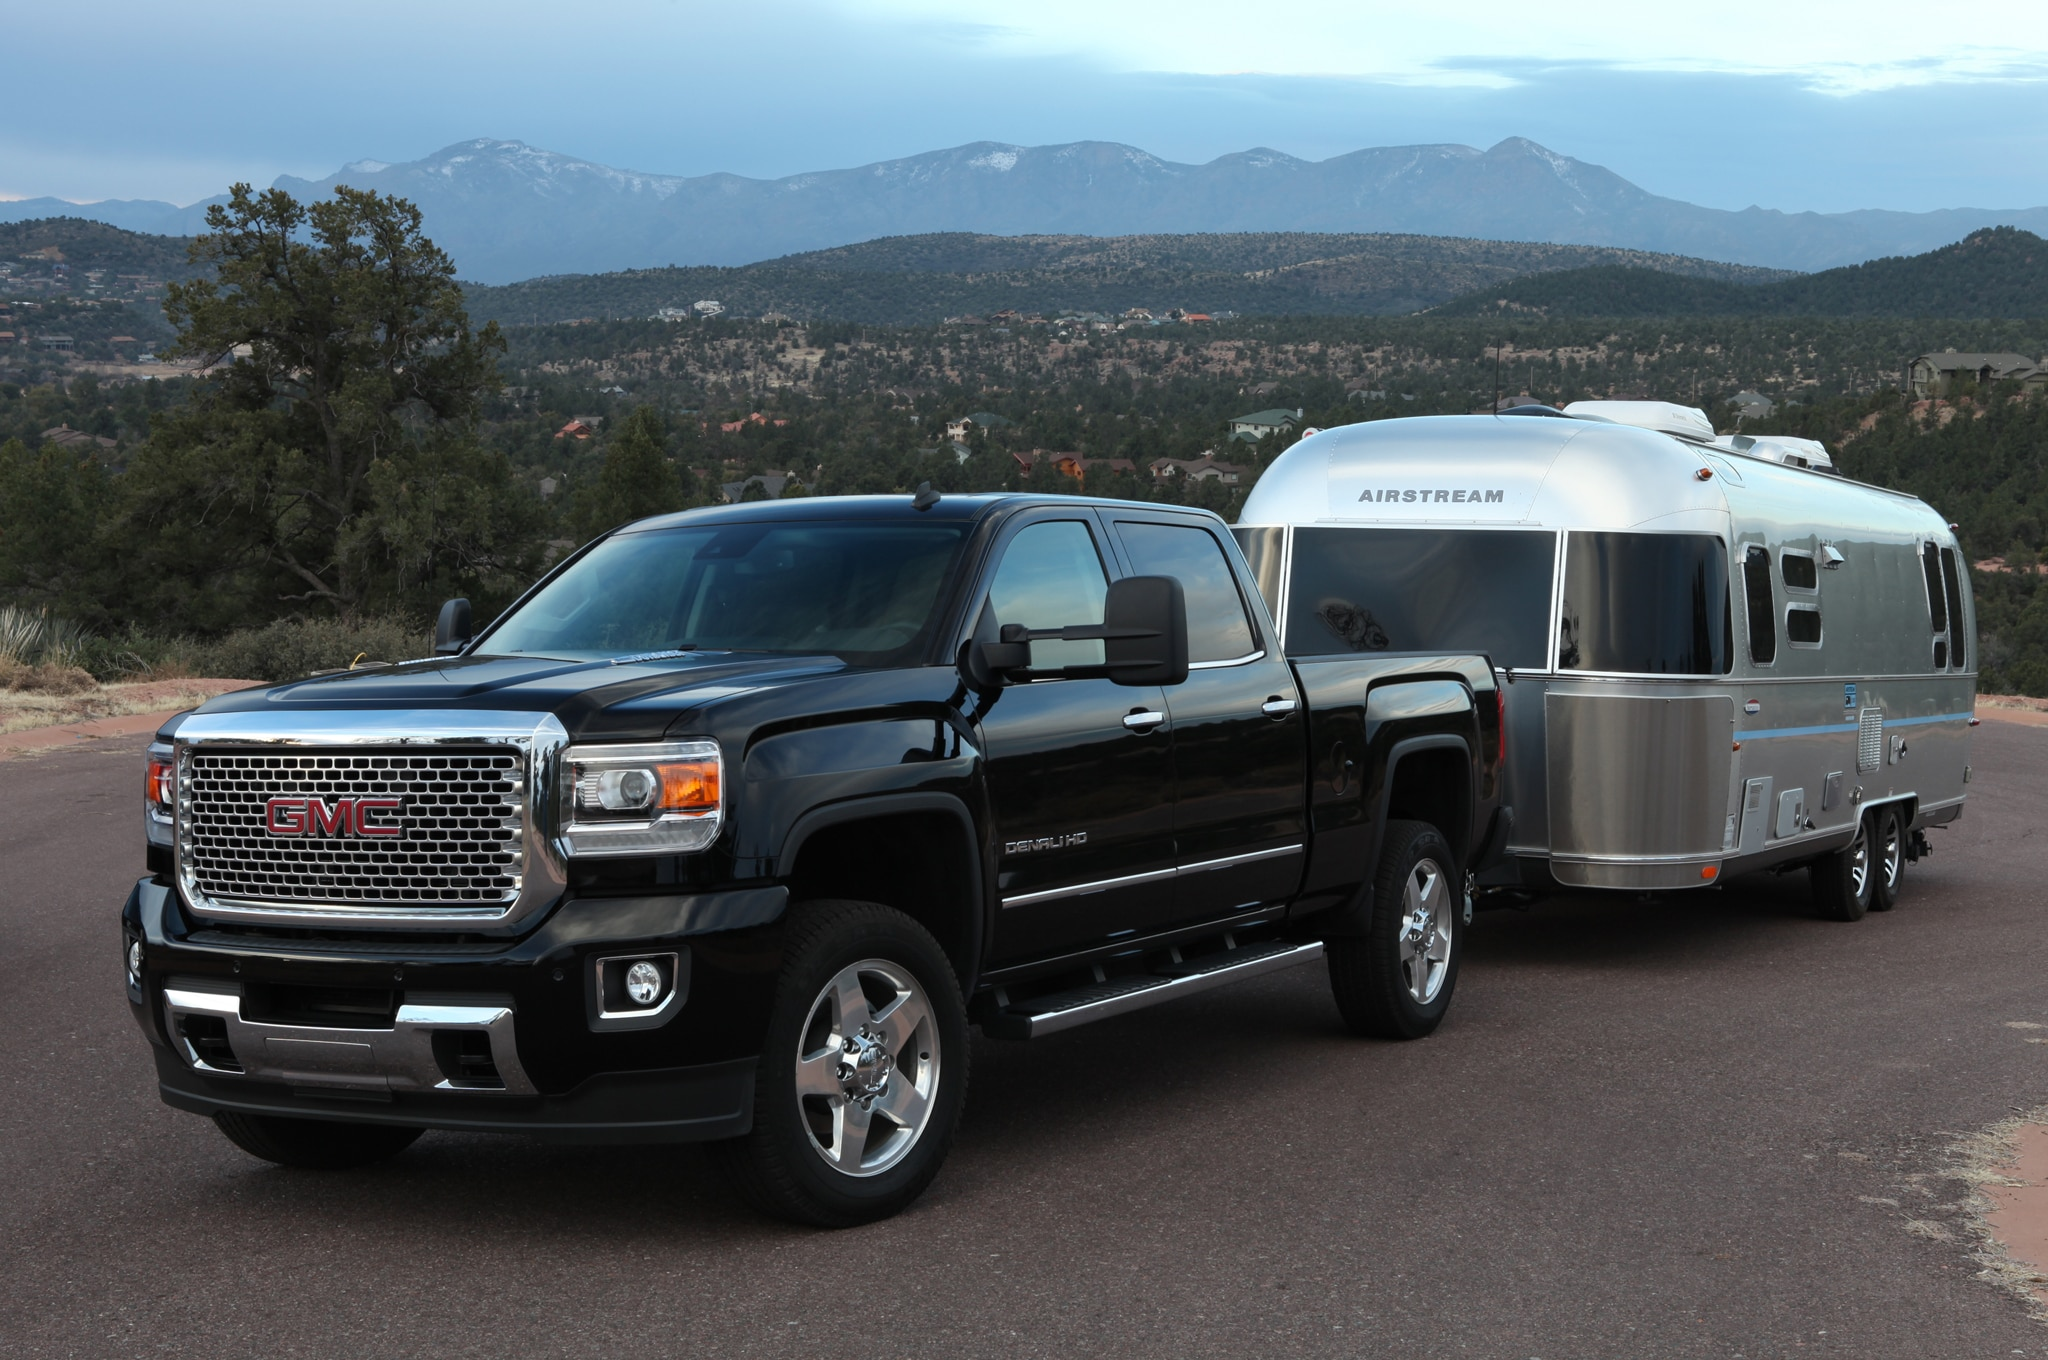 2015 GMC Sierra 2500HD Denali front view with trailer